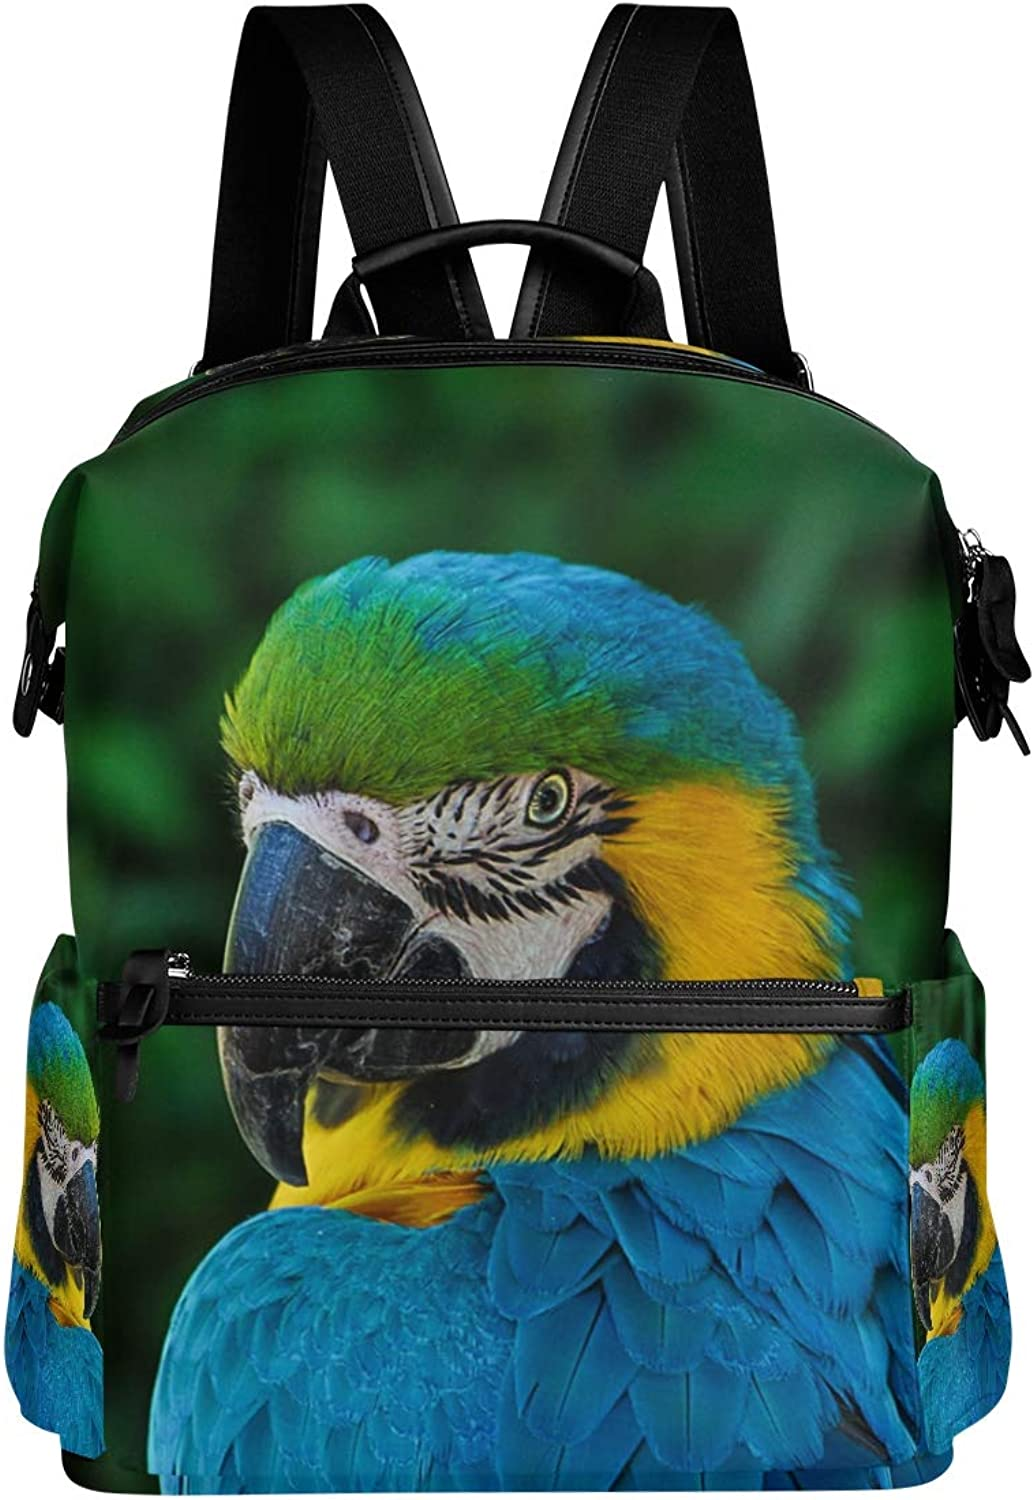 MONTOJ blueee Feather Parred Leather Travel Bag Campus Backpack